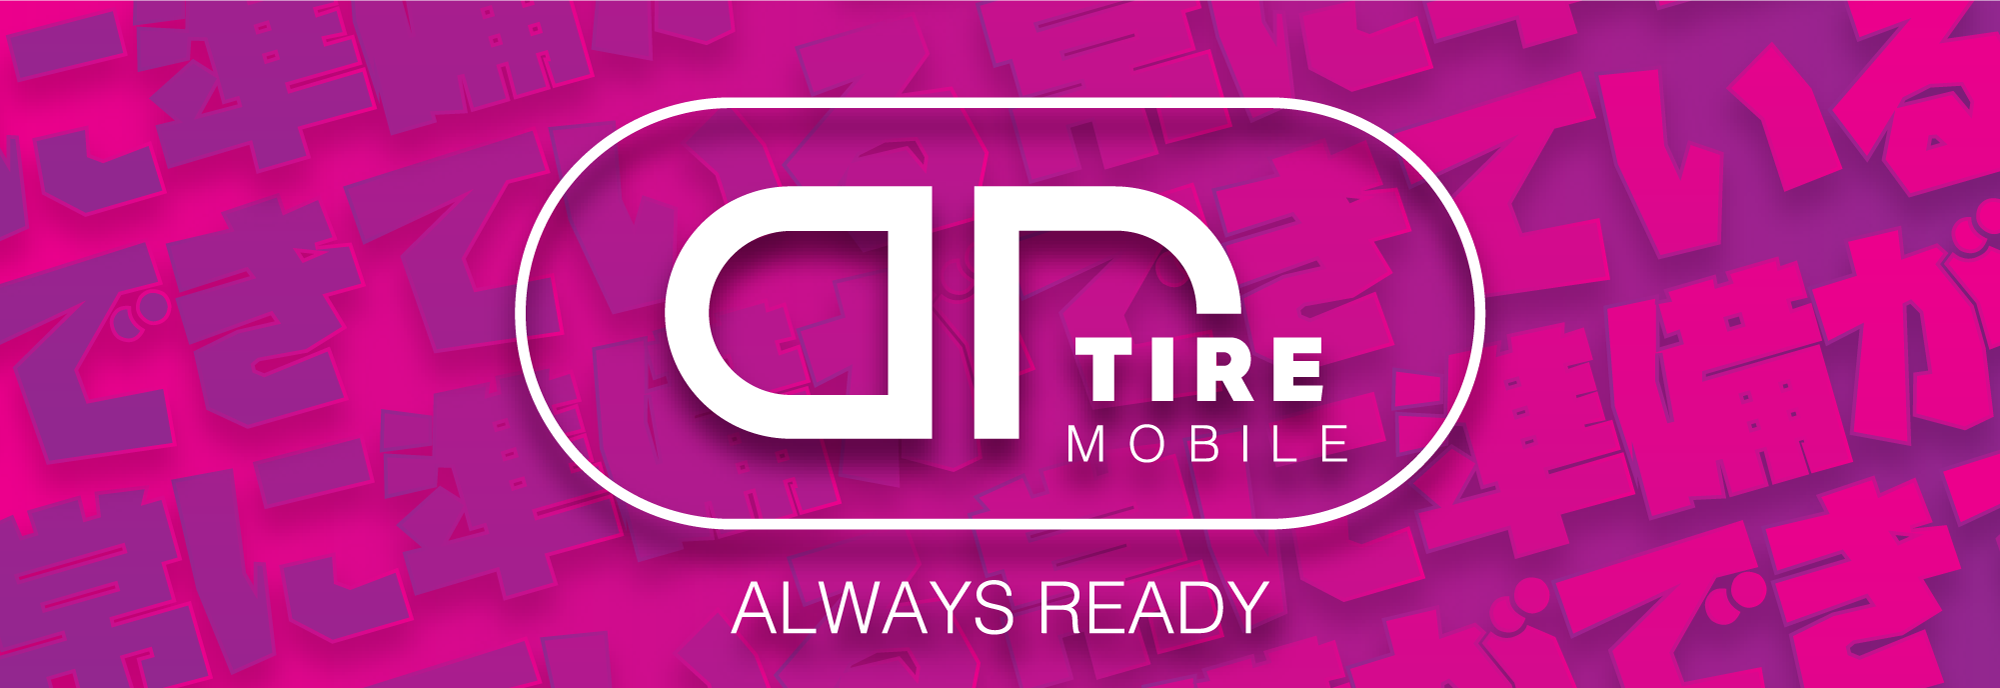 AR-MOBILE-TIRE-PINK-JAPANESE.png